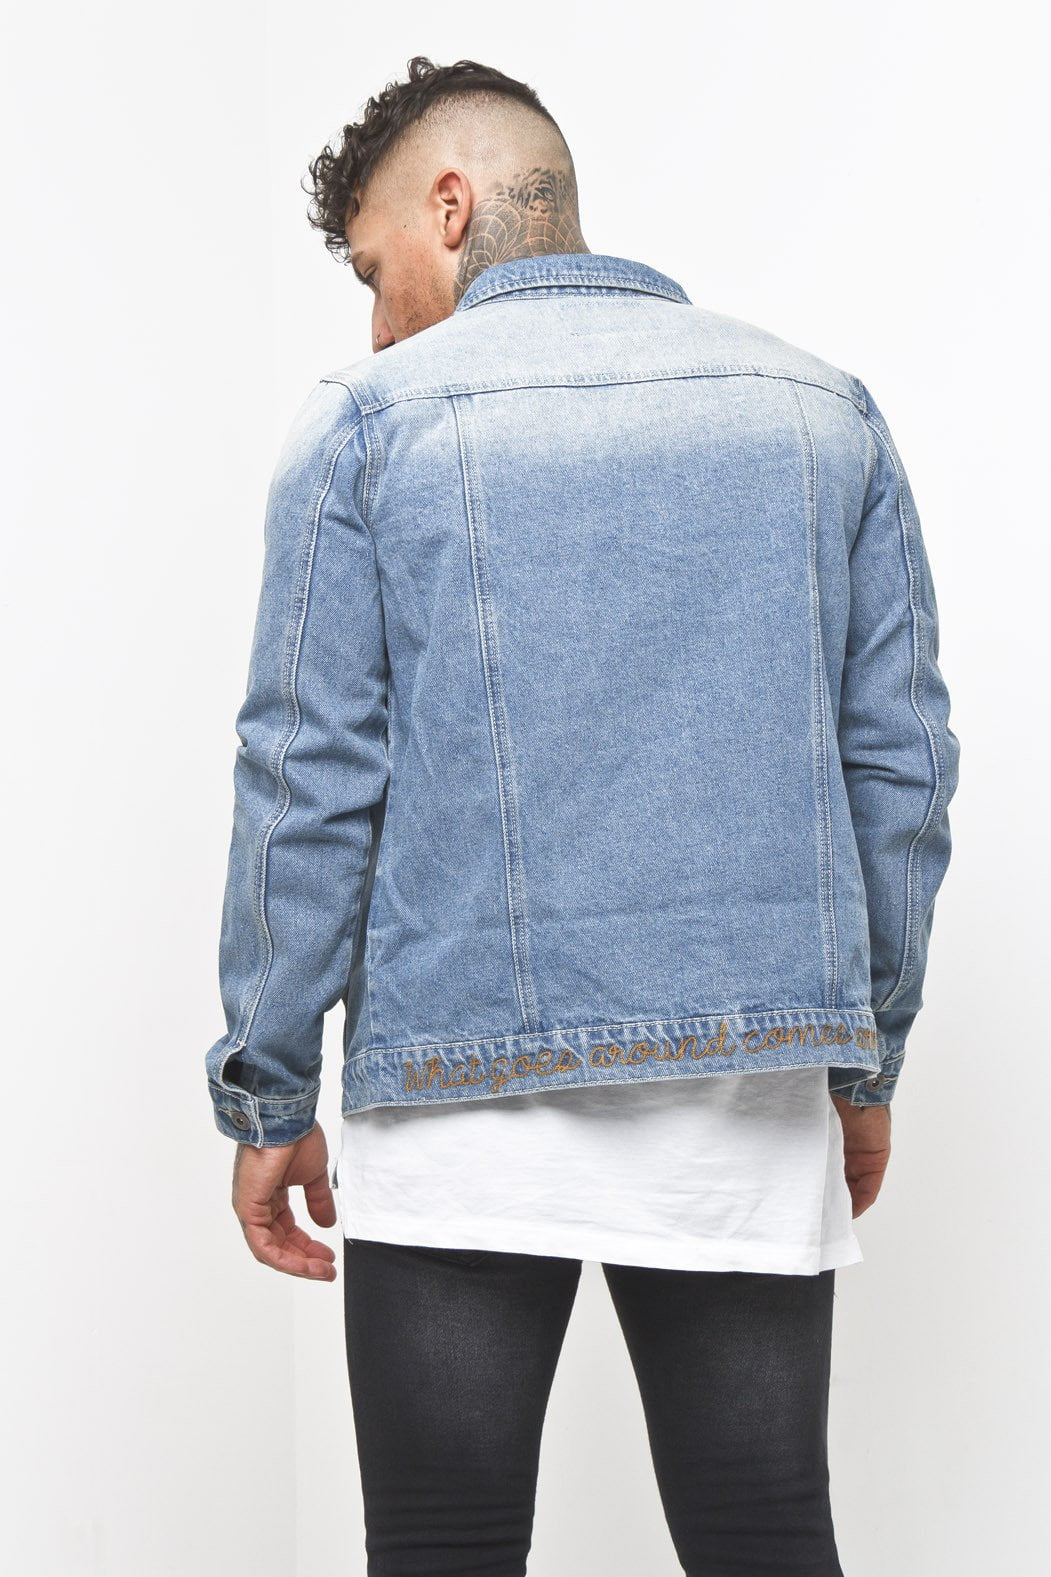 Liquor n Poker - Slogan Denim Stitch Jacket What Goes Around - Liquor N Poker  Liquor N Poker